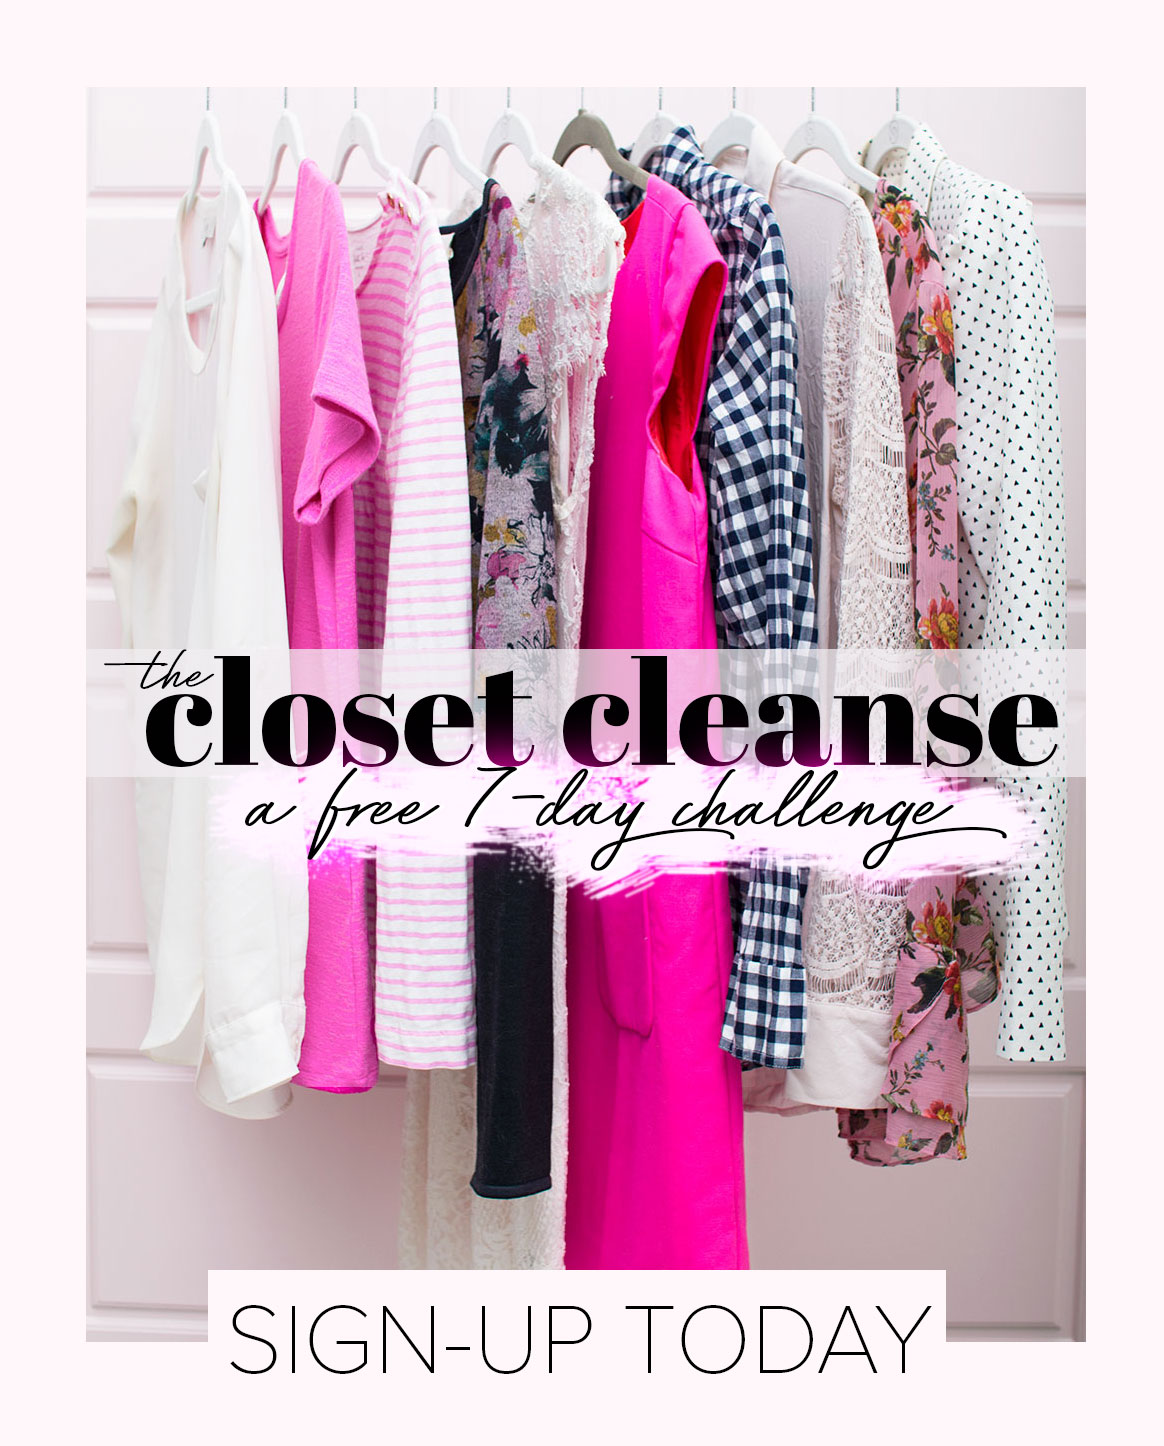 sign-up for the closet cleanse challenge